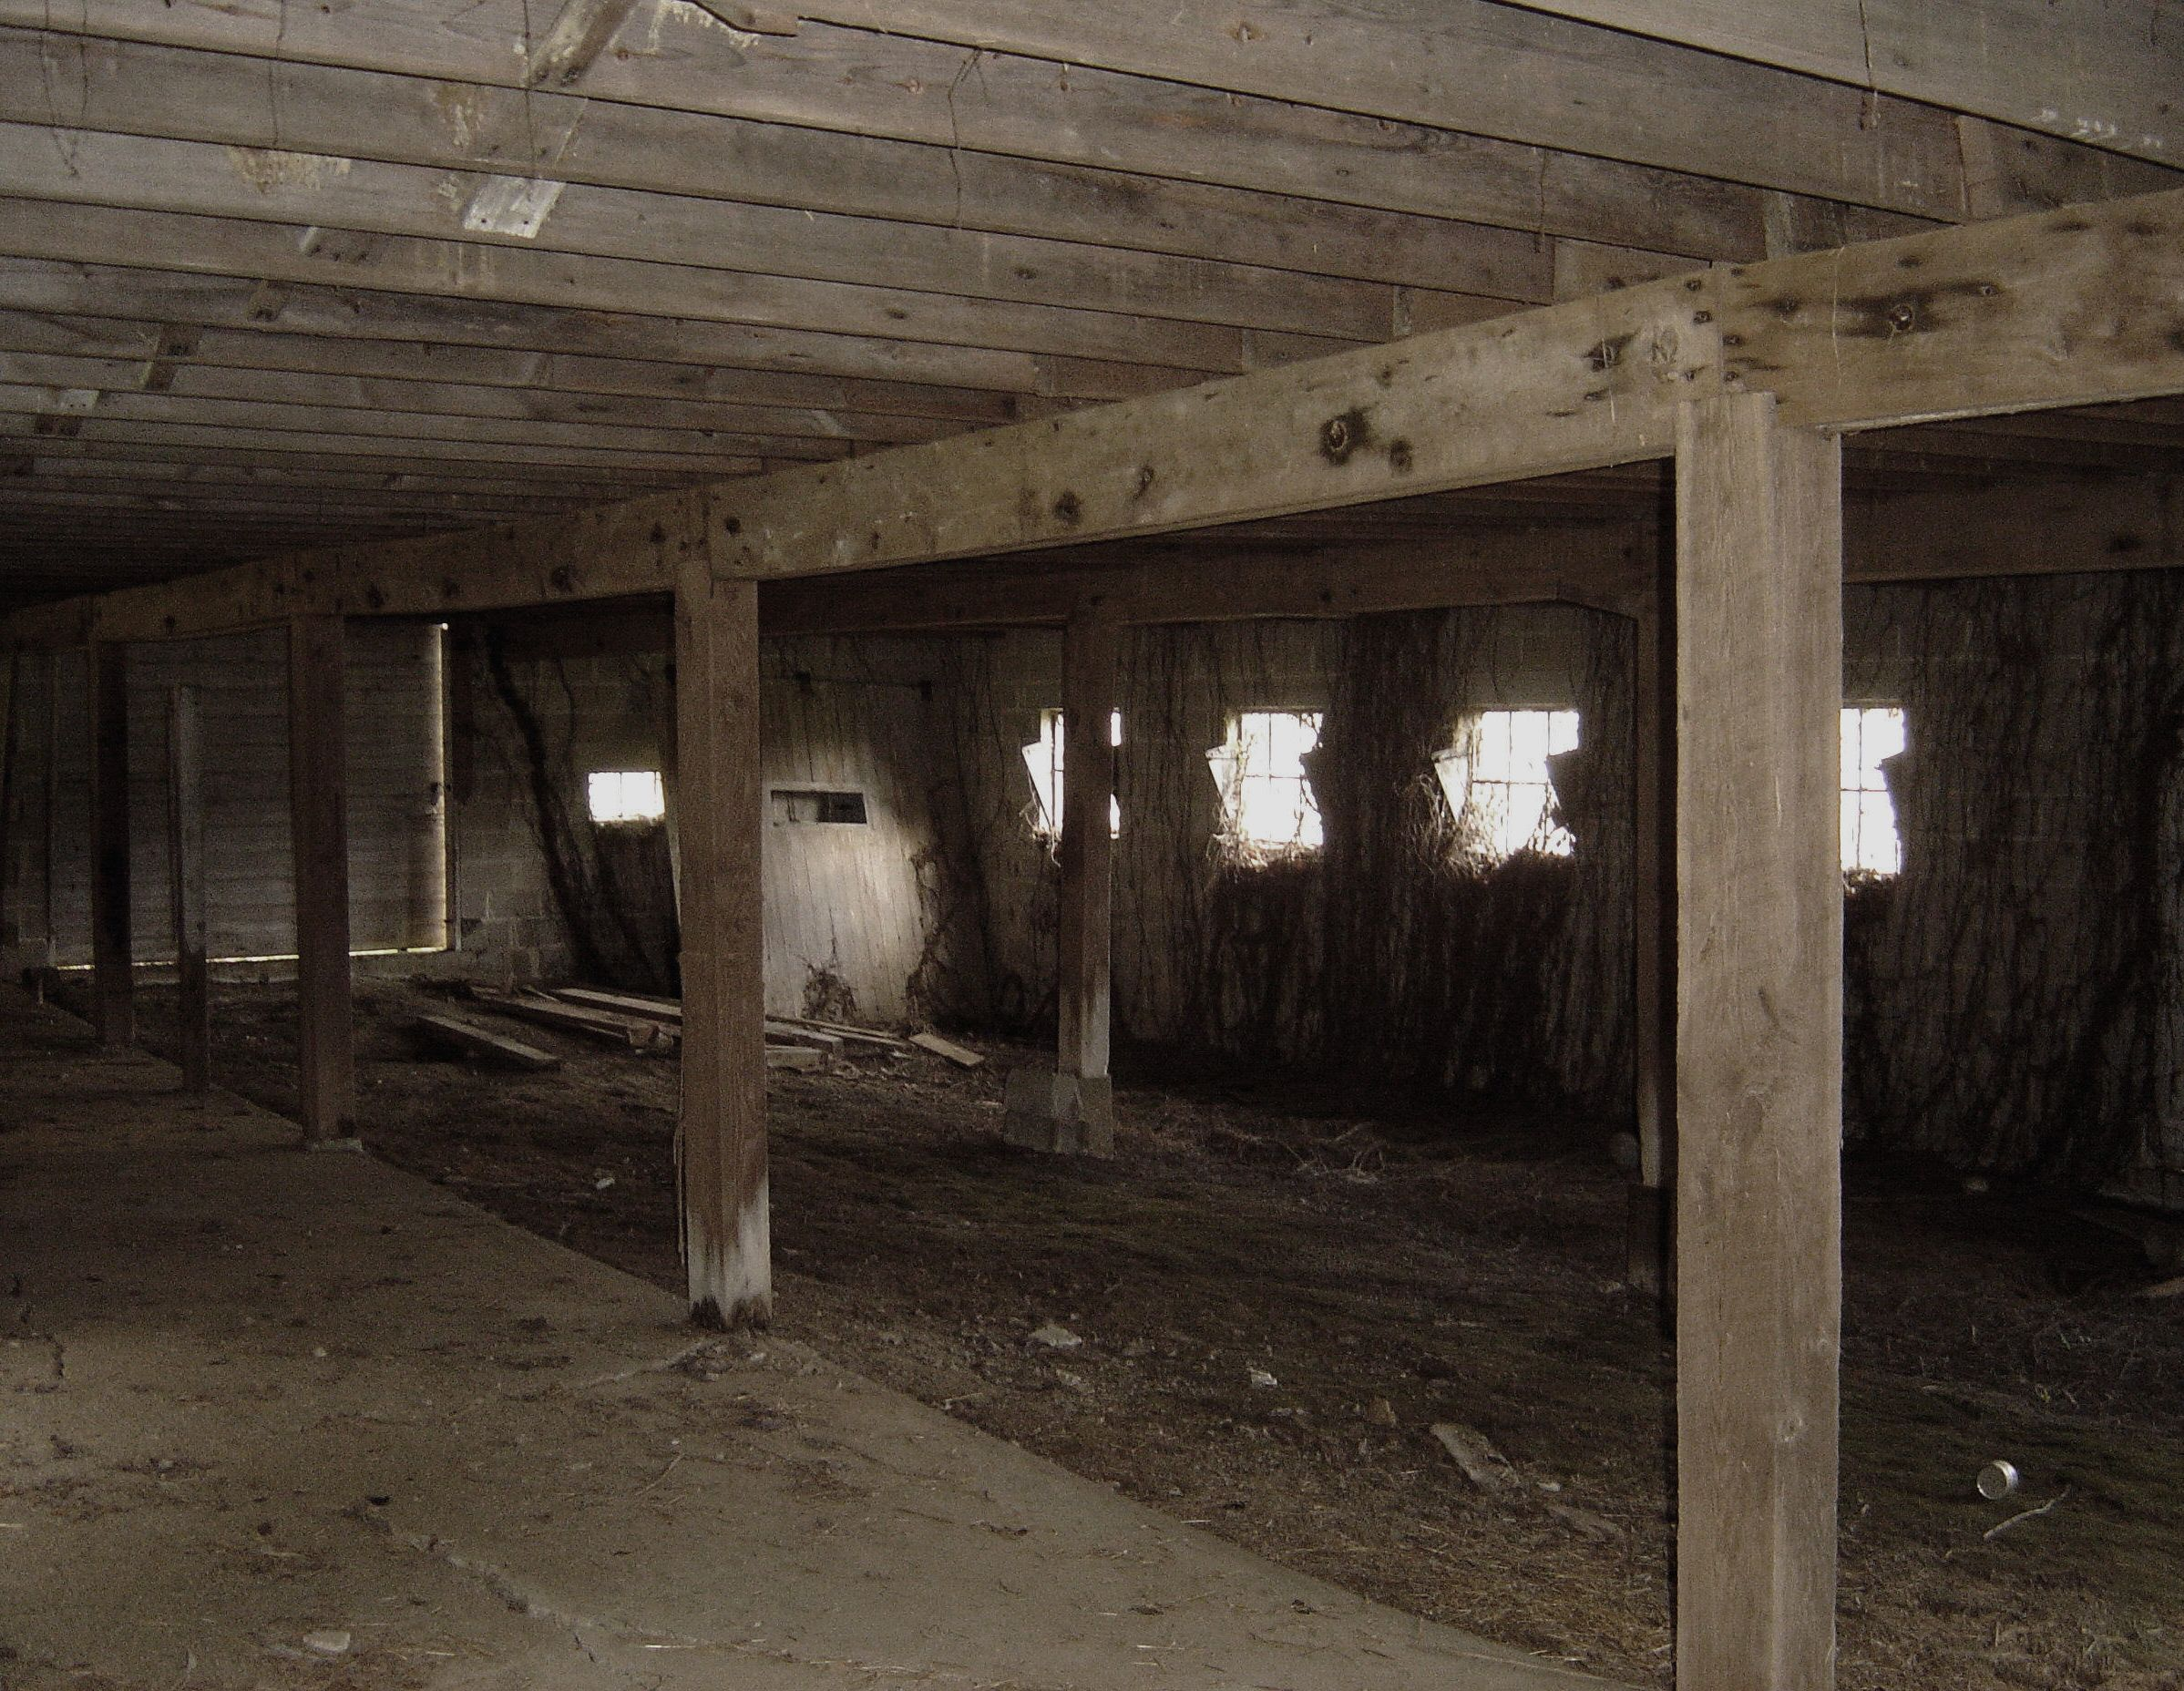 This Is An Interesting Interior Photo Of Abandoned Barn In Brown